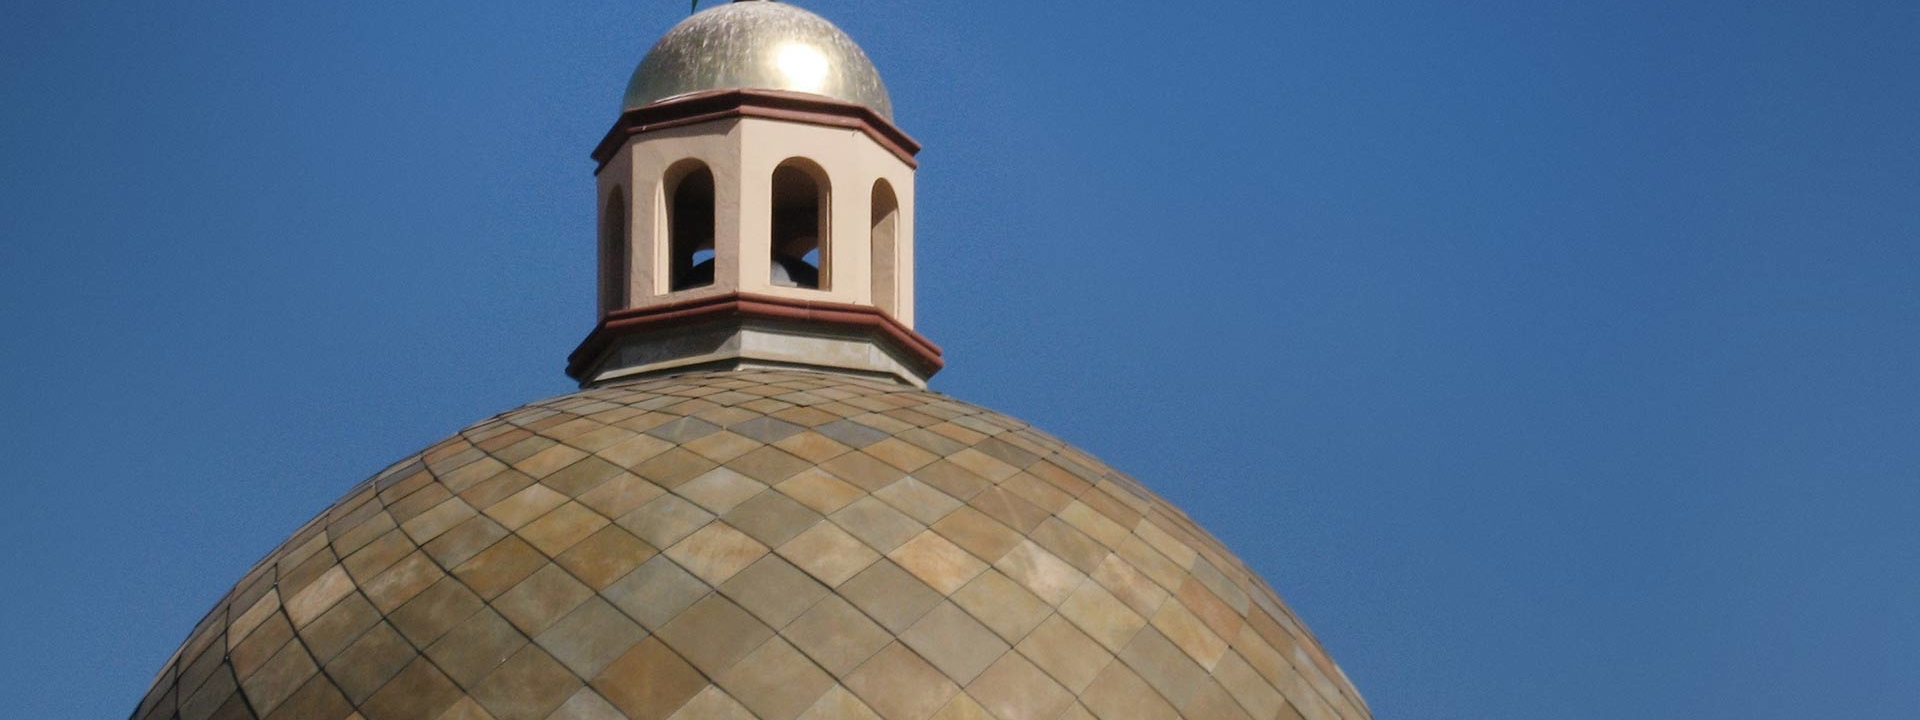 Roano™ Zinc patina featured as part of the Plaza Dome